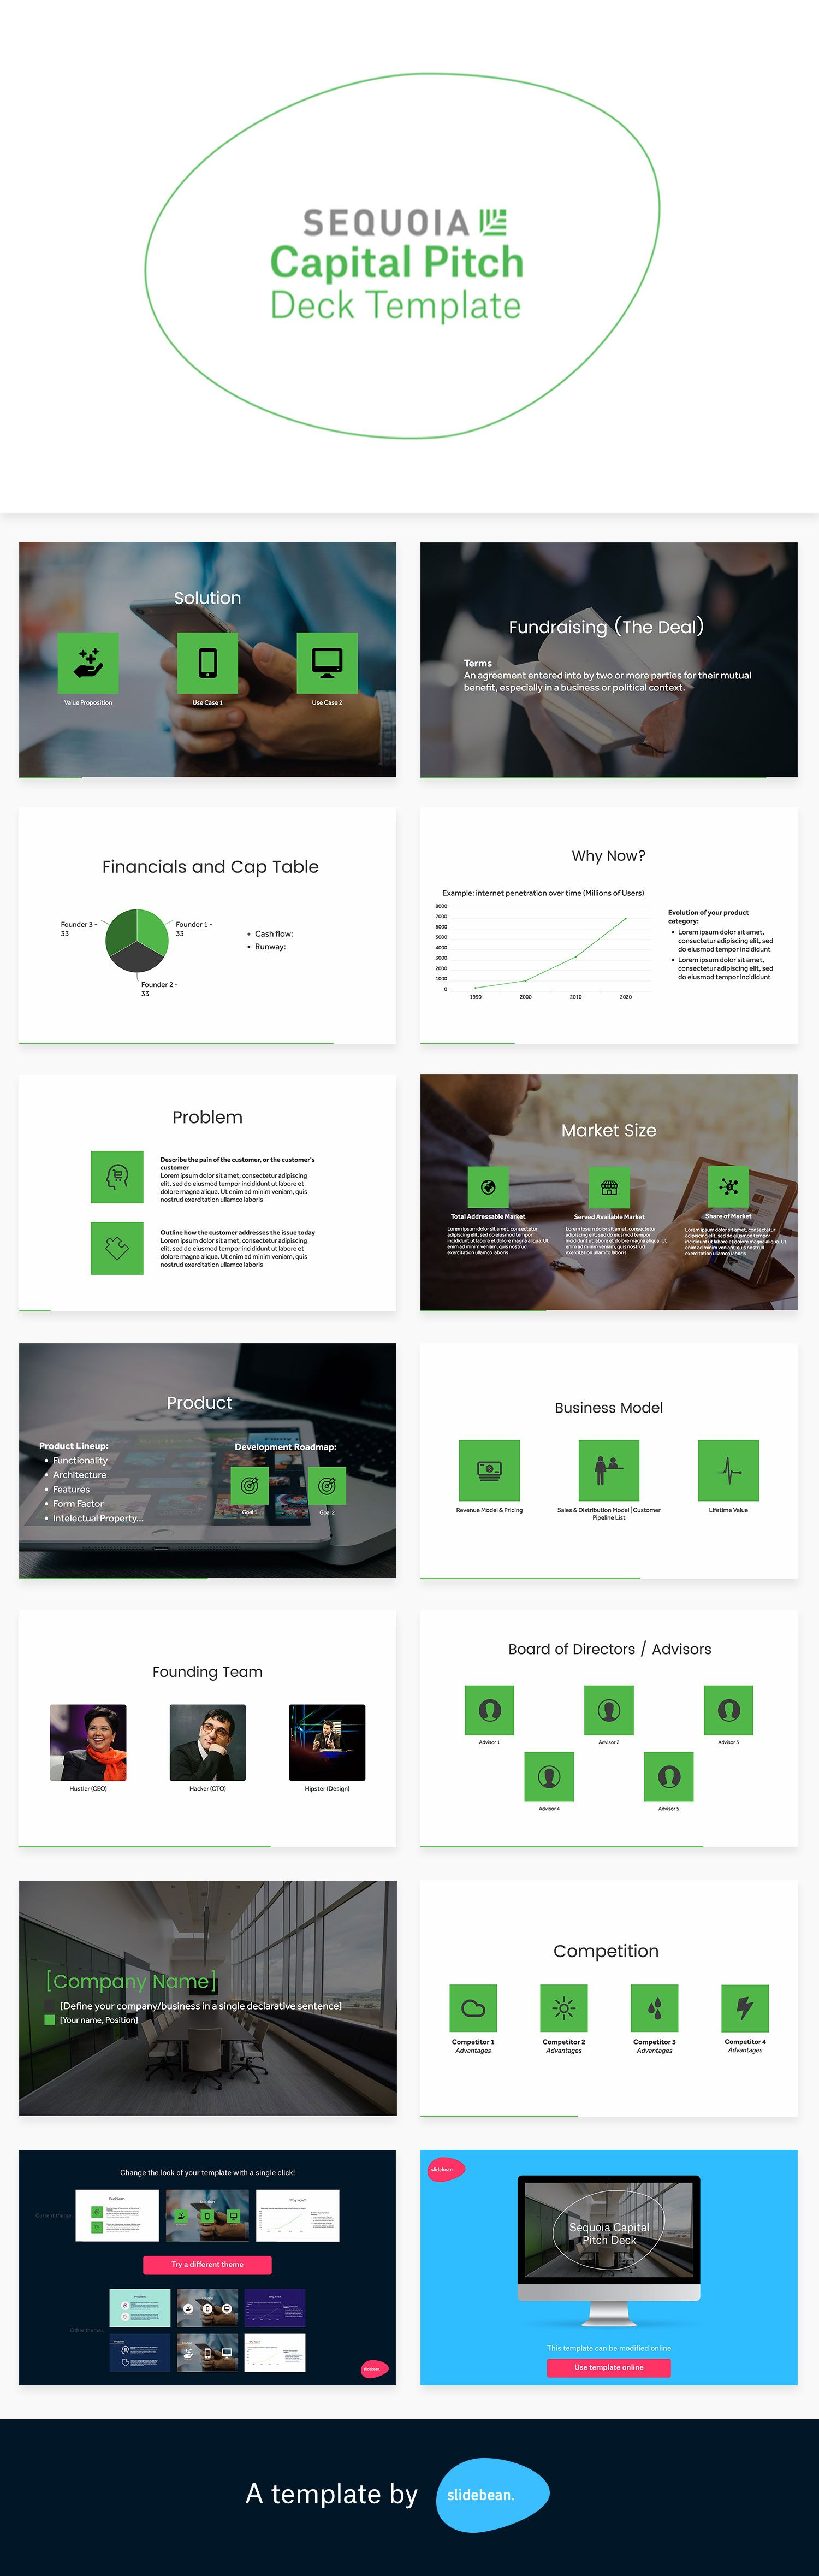 Sequoia Capital Pitch Deck Template Pitch Presentation Templates - Sequoia capital pitch deck template